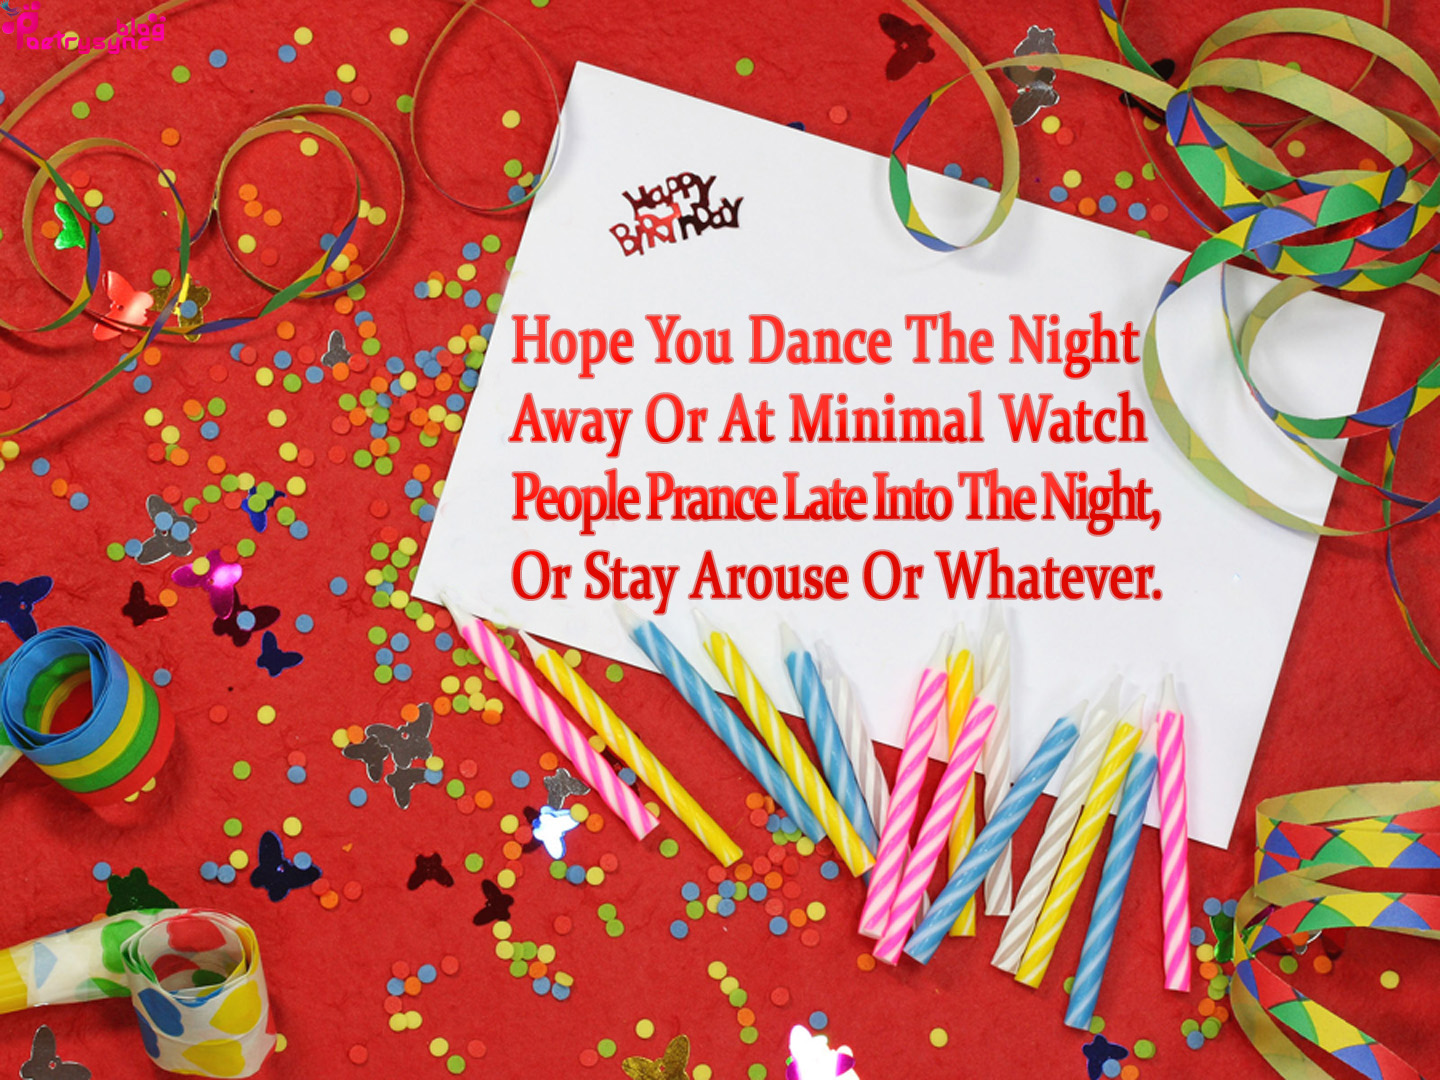 Zaat Se Zaat Taak Happy Birthday Card Images with English Quotes – Happy Birthday Cards for a Friend